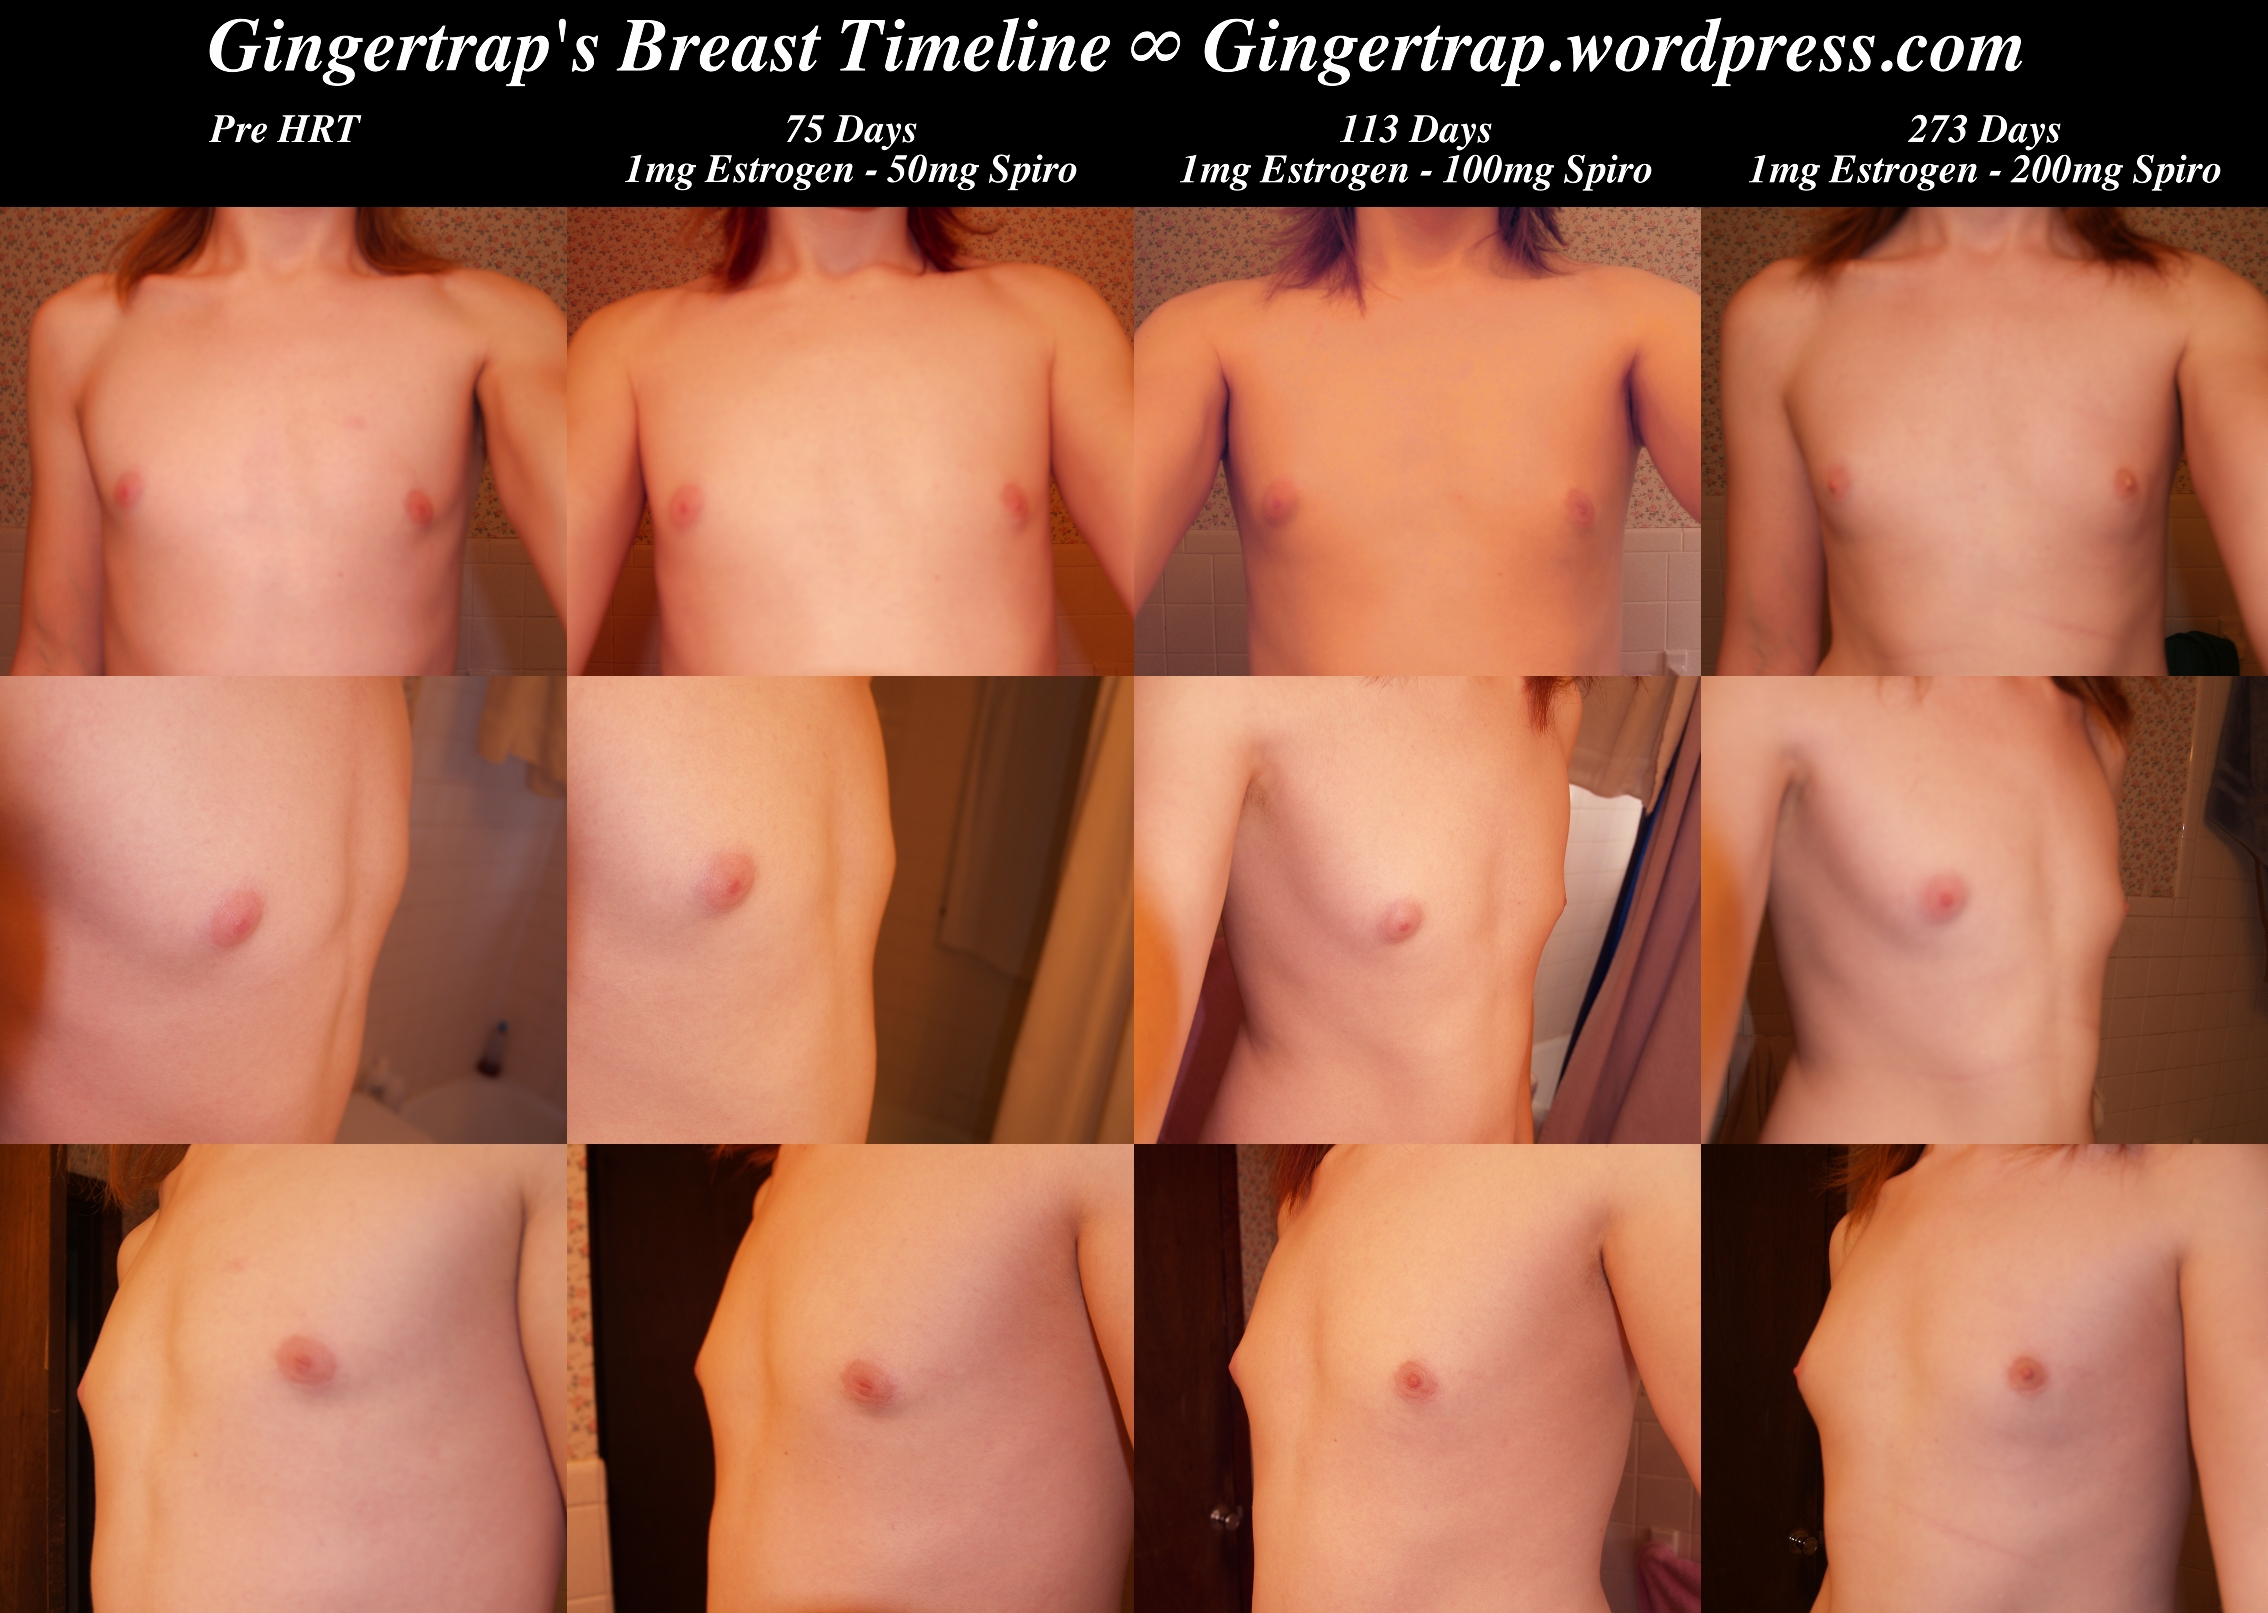 pre-menapausal breast growth